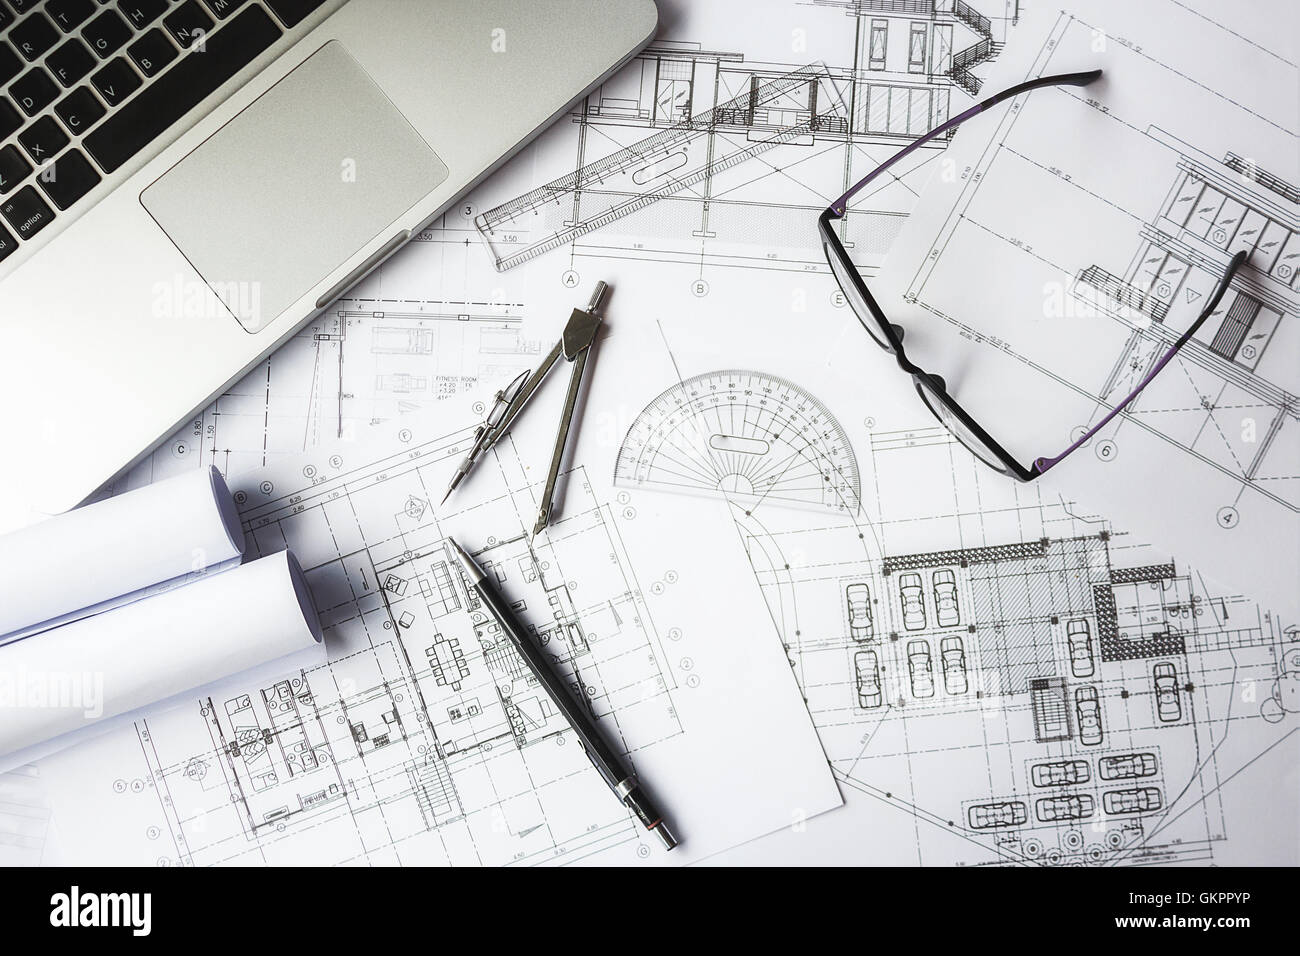 Architect architecture blueprint business businessman candid architect architecture blueprint business businessman candid casual coffee concept construction corporate creative malvernweather Images